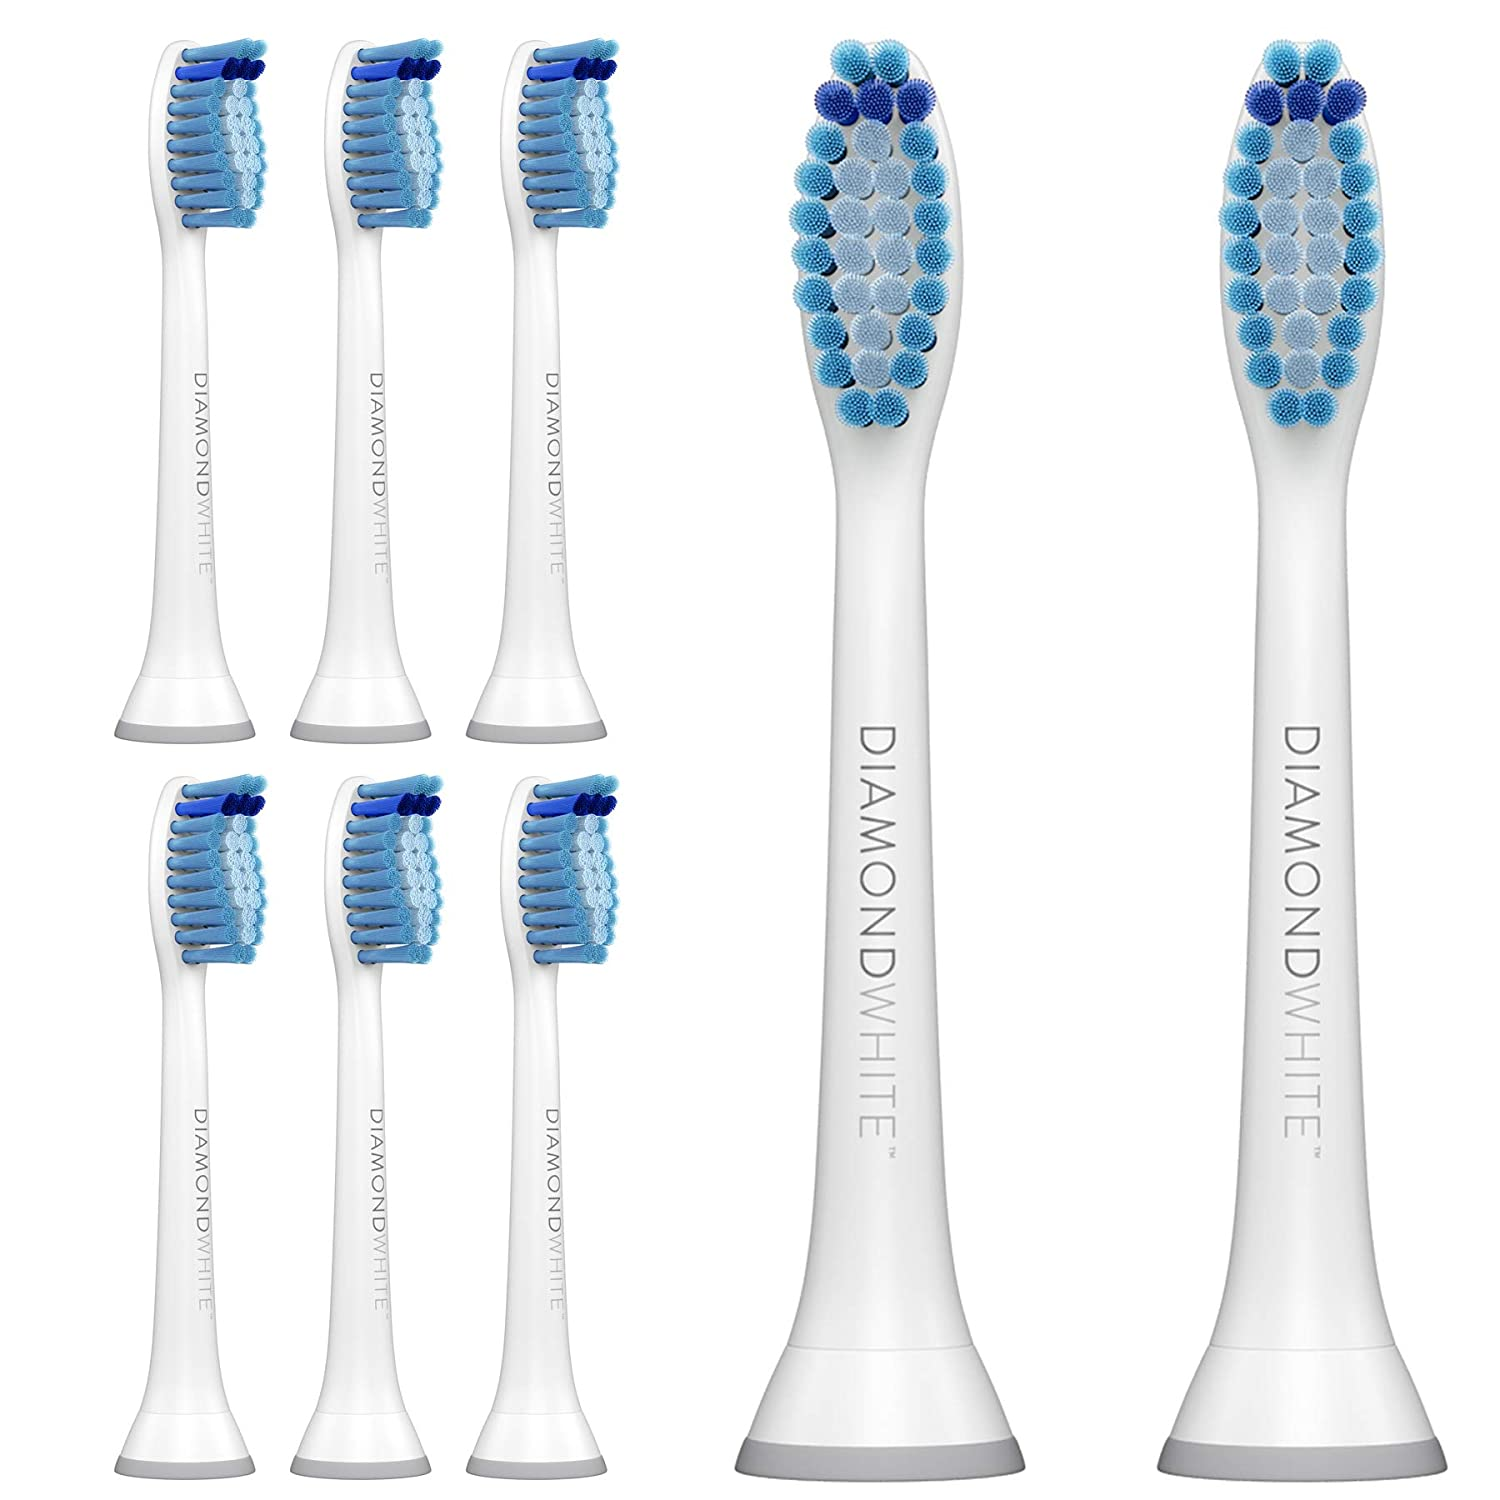 DiamondWhite Replacement Toothbrush Heads for Sonicare, Fits 2 Series, ProResults, FlexCare, Healthy White, Platinum, EasyClean, DiamondClean, Gum Health models (Blue - 8 Pack)